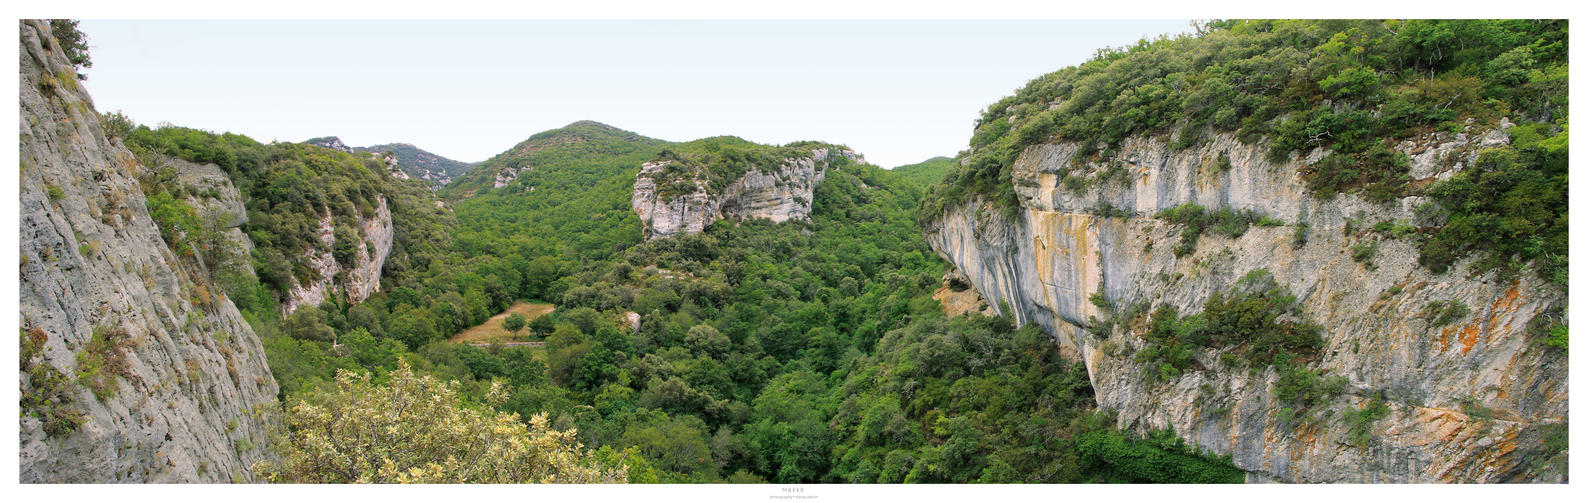 View at Fort Buoux - France by MBKKR